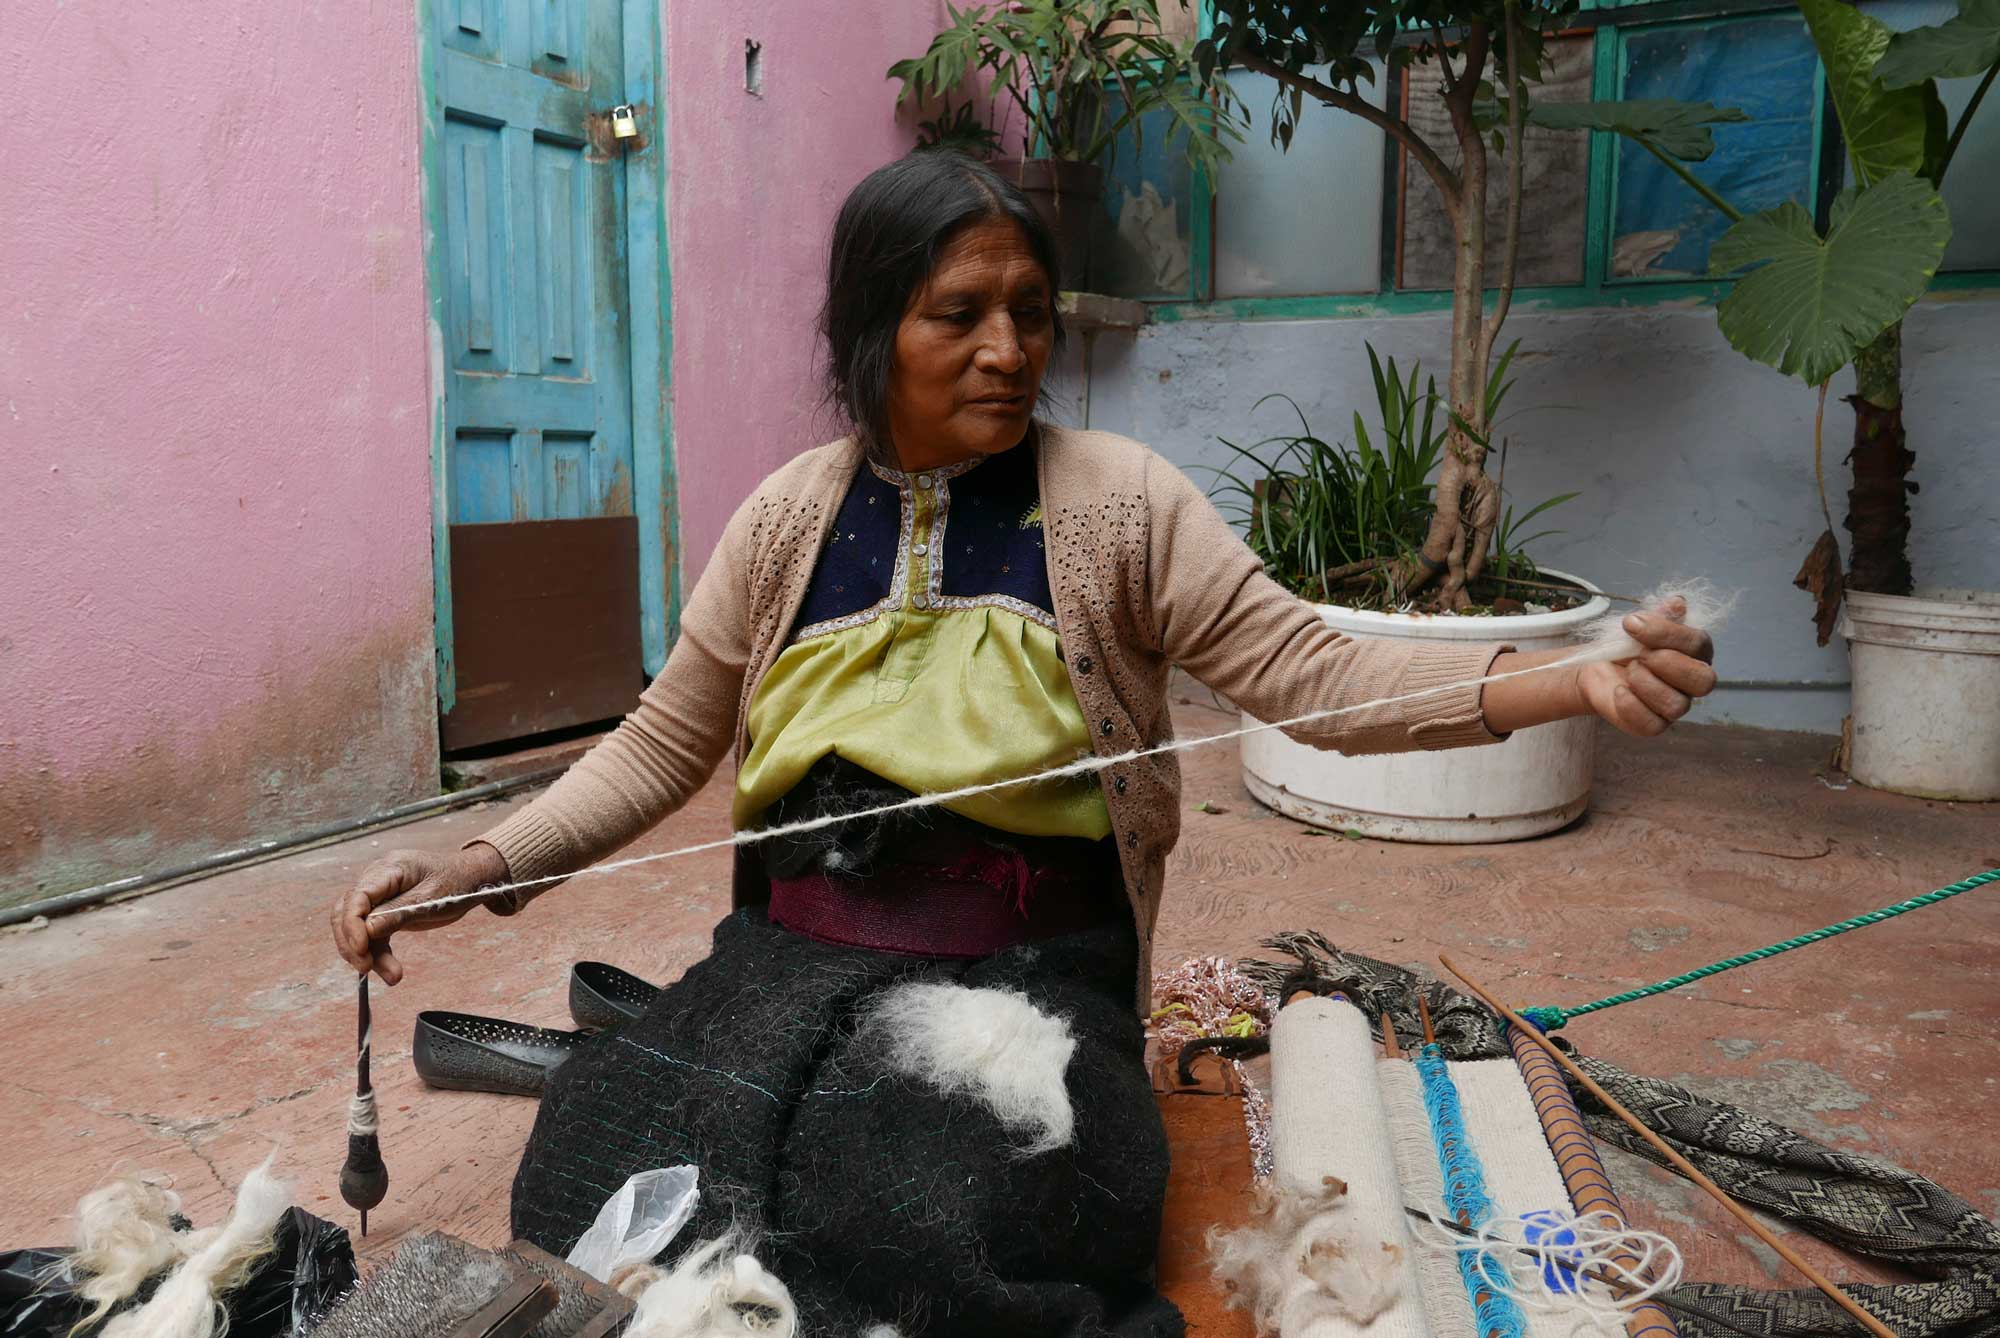 Artisan Spinning Wool Textiles Drop Spindle Chiapas Mexico